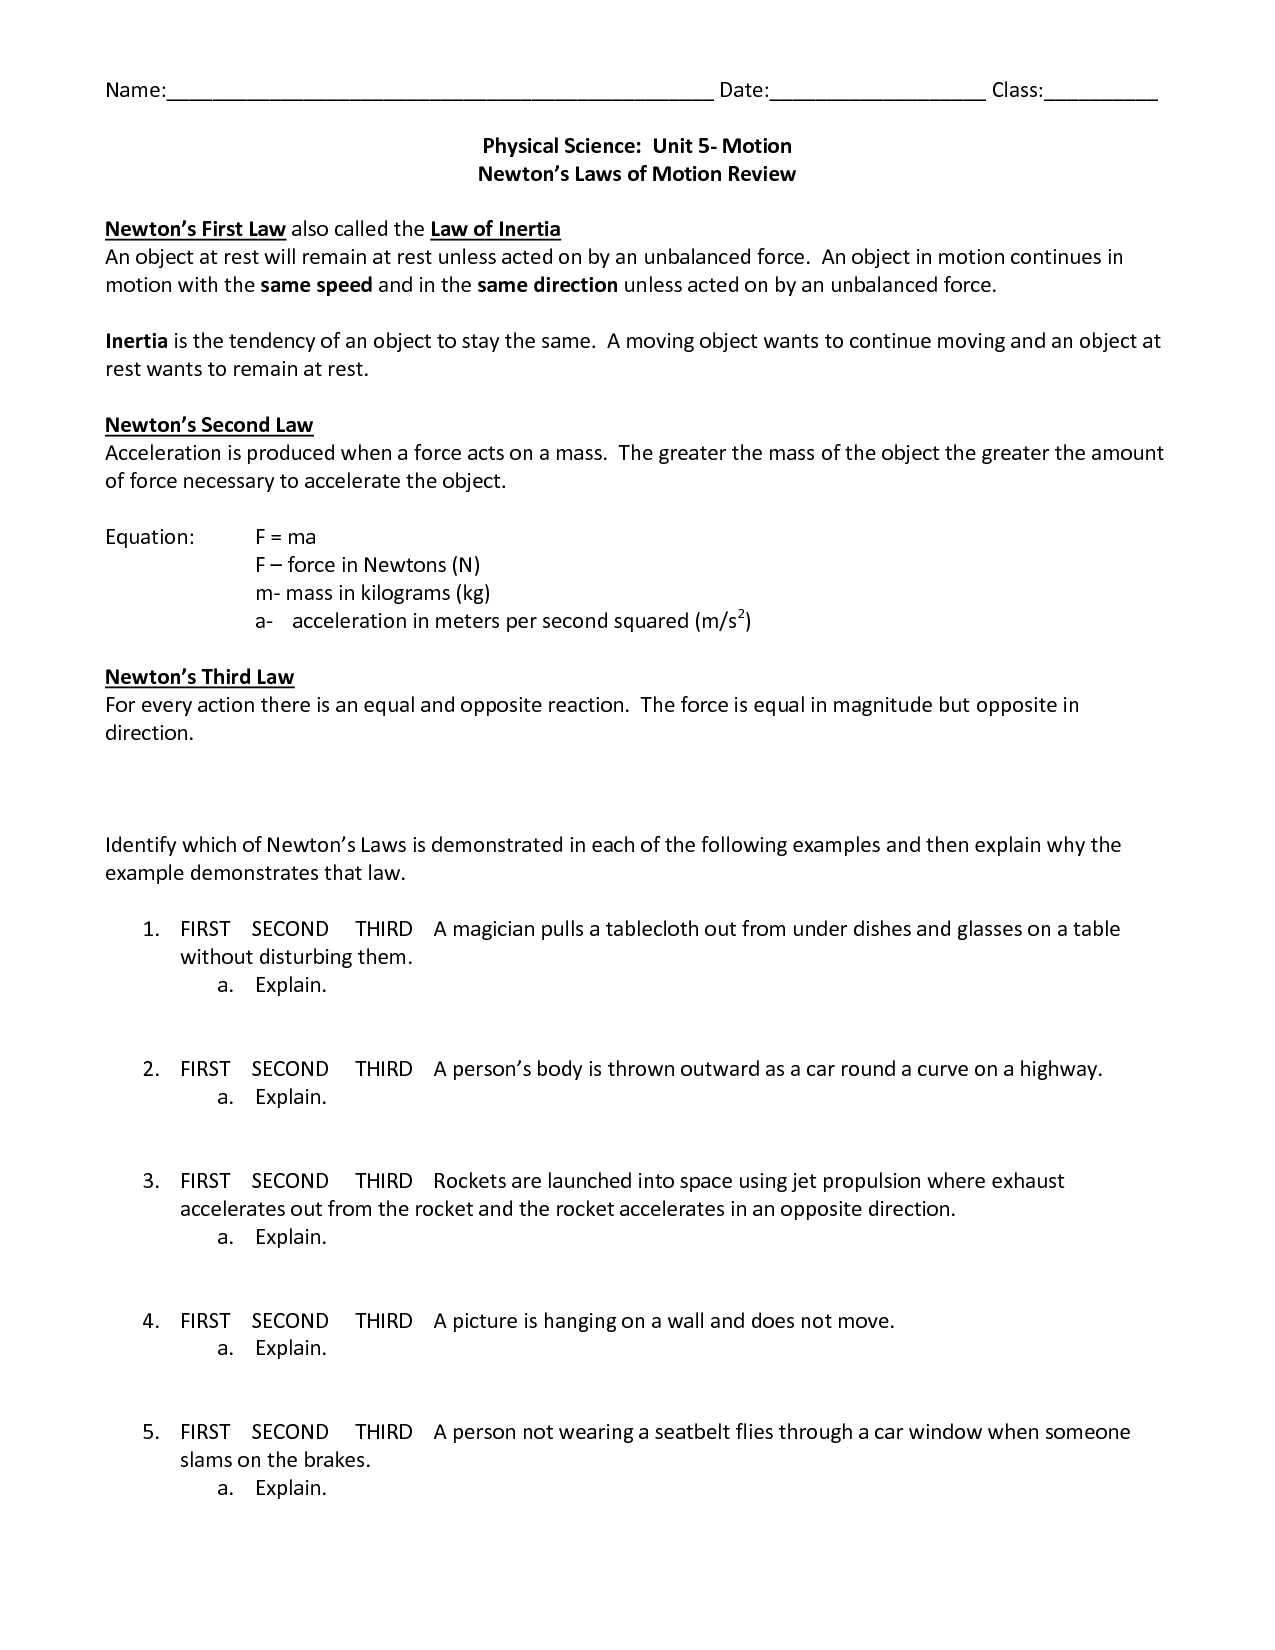 Physical Science Worksheet Conservation Of Energy 2 Answer